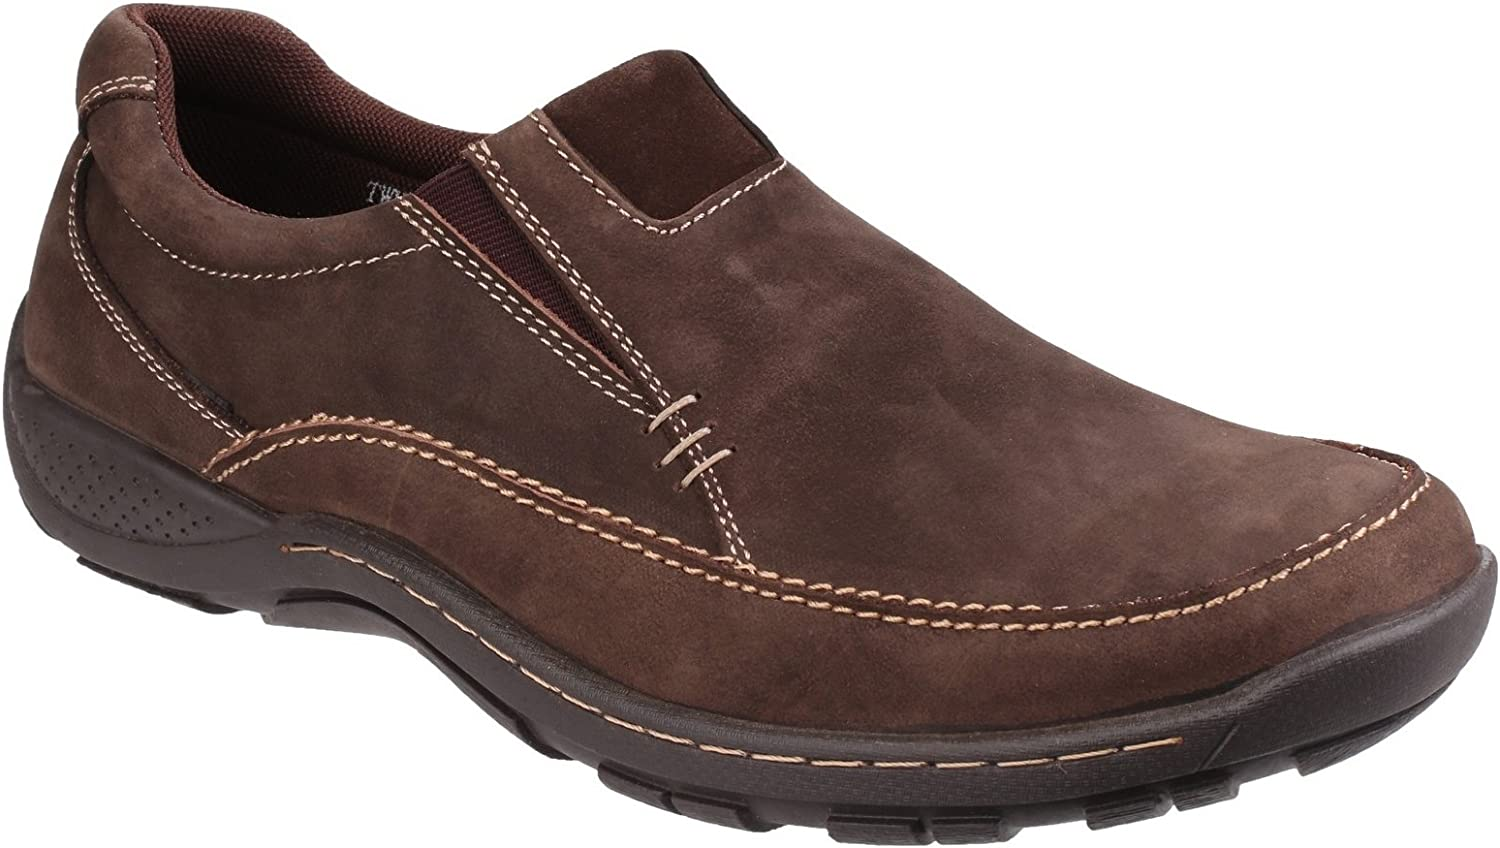 Cotswold Mens Twyning Slip On shoes Coffee Size UK 6 EU 40